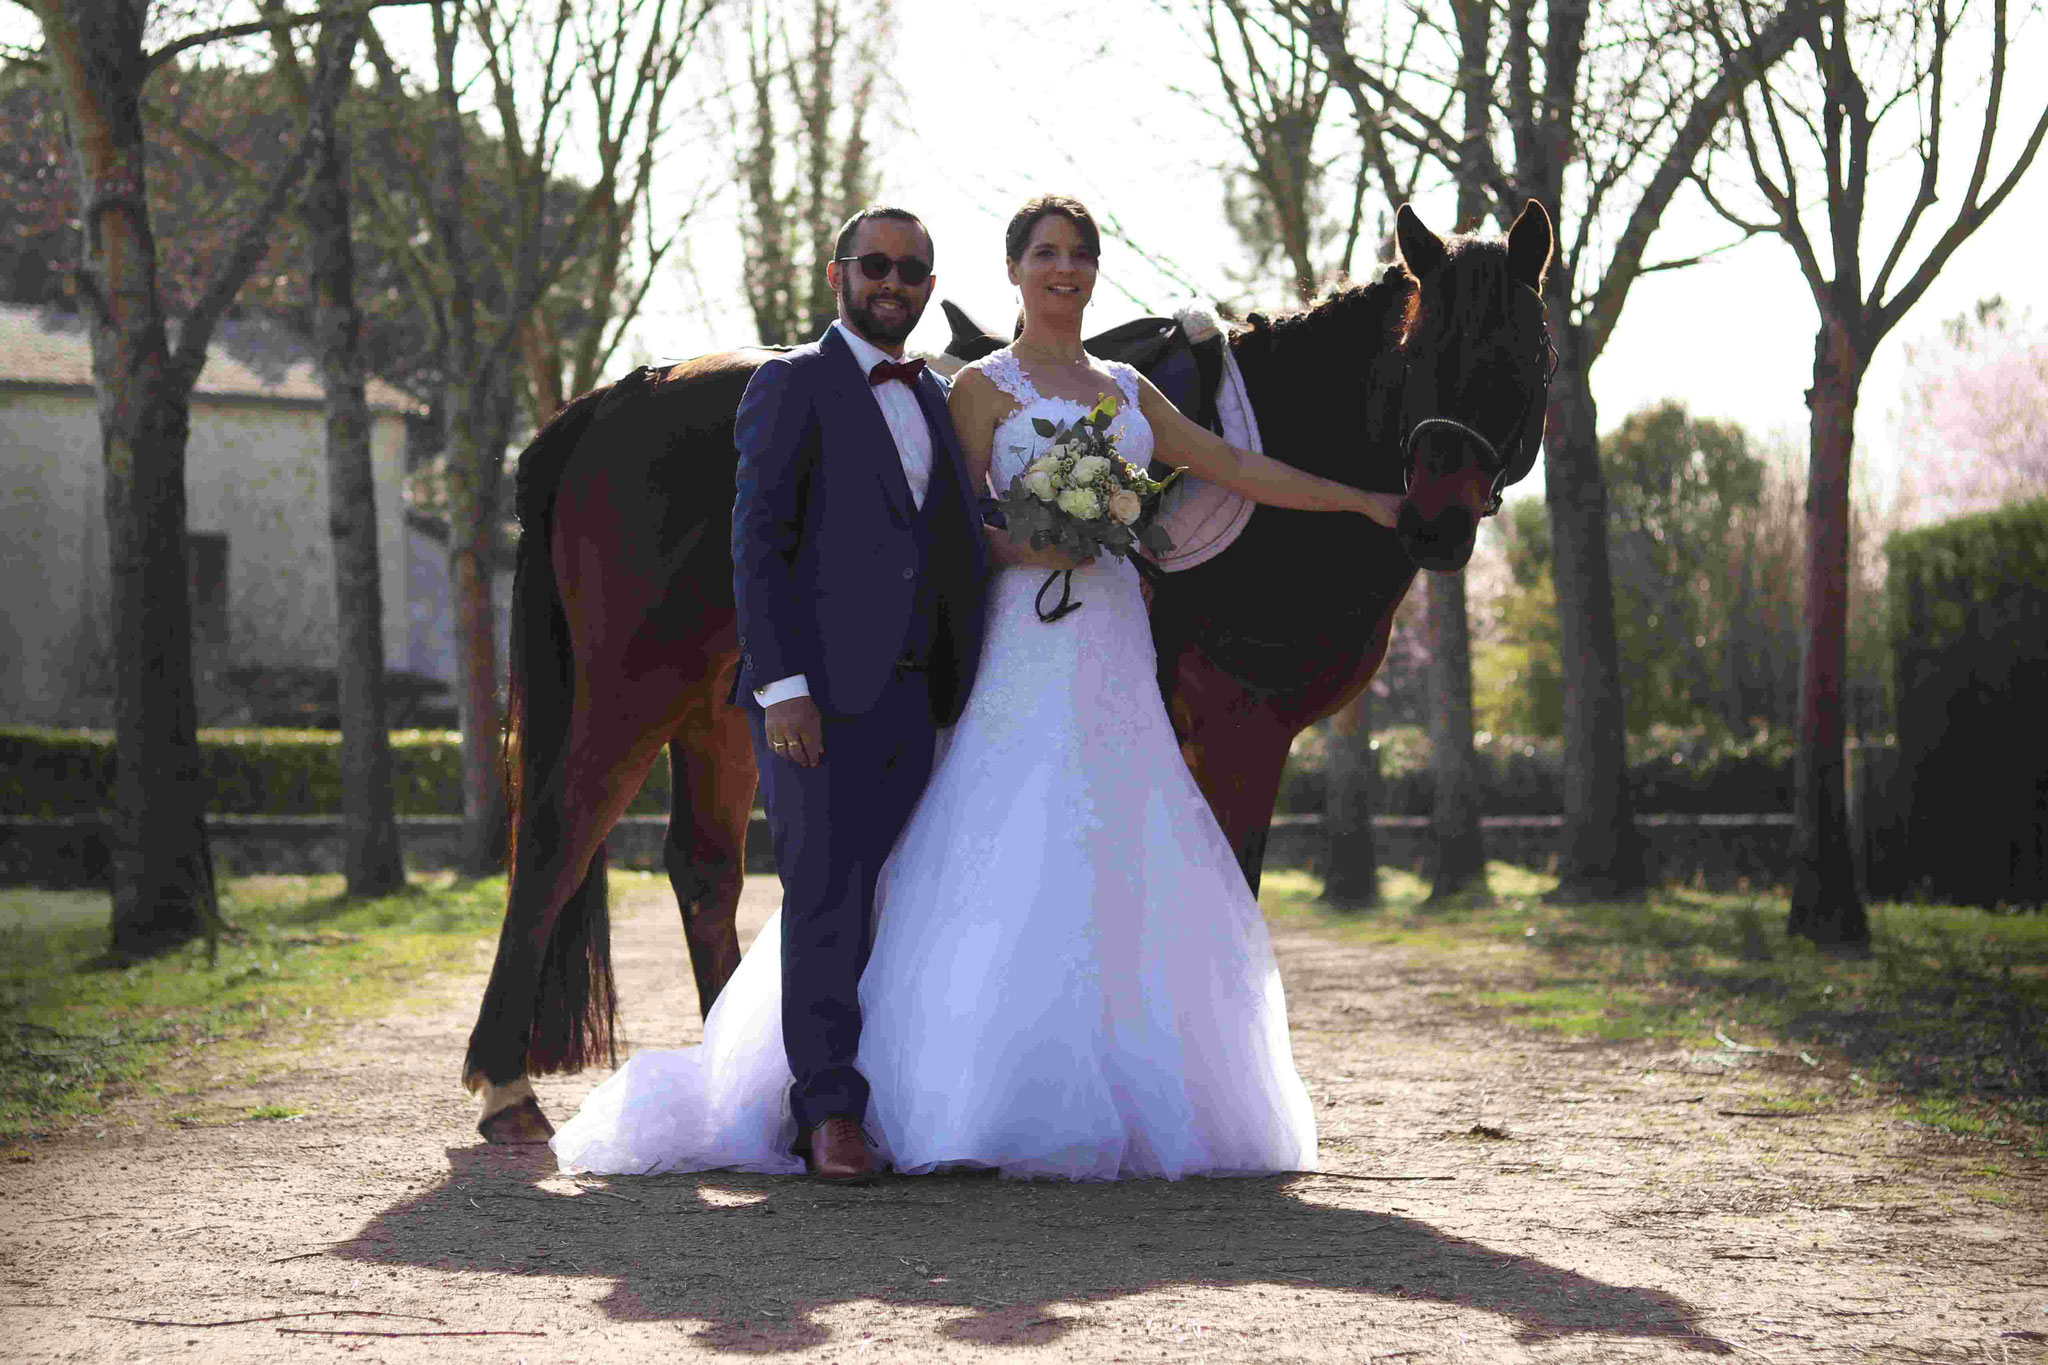 Shooting mariage Laurine, Anthony et Caporal